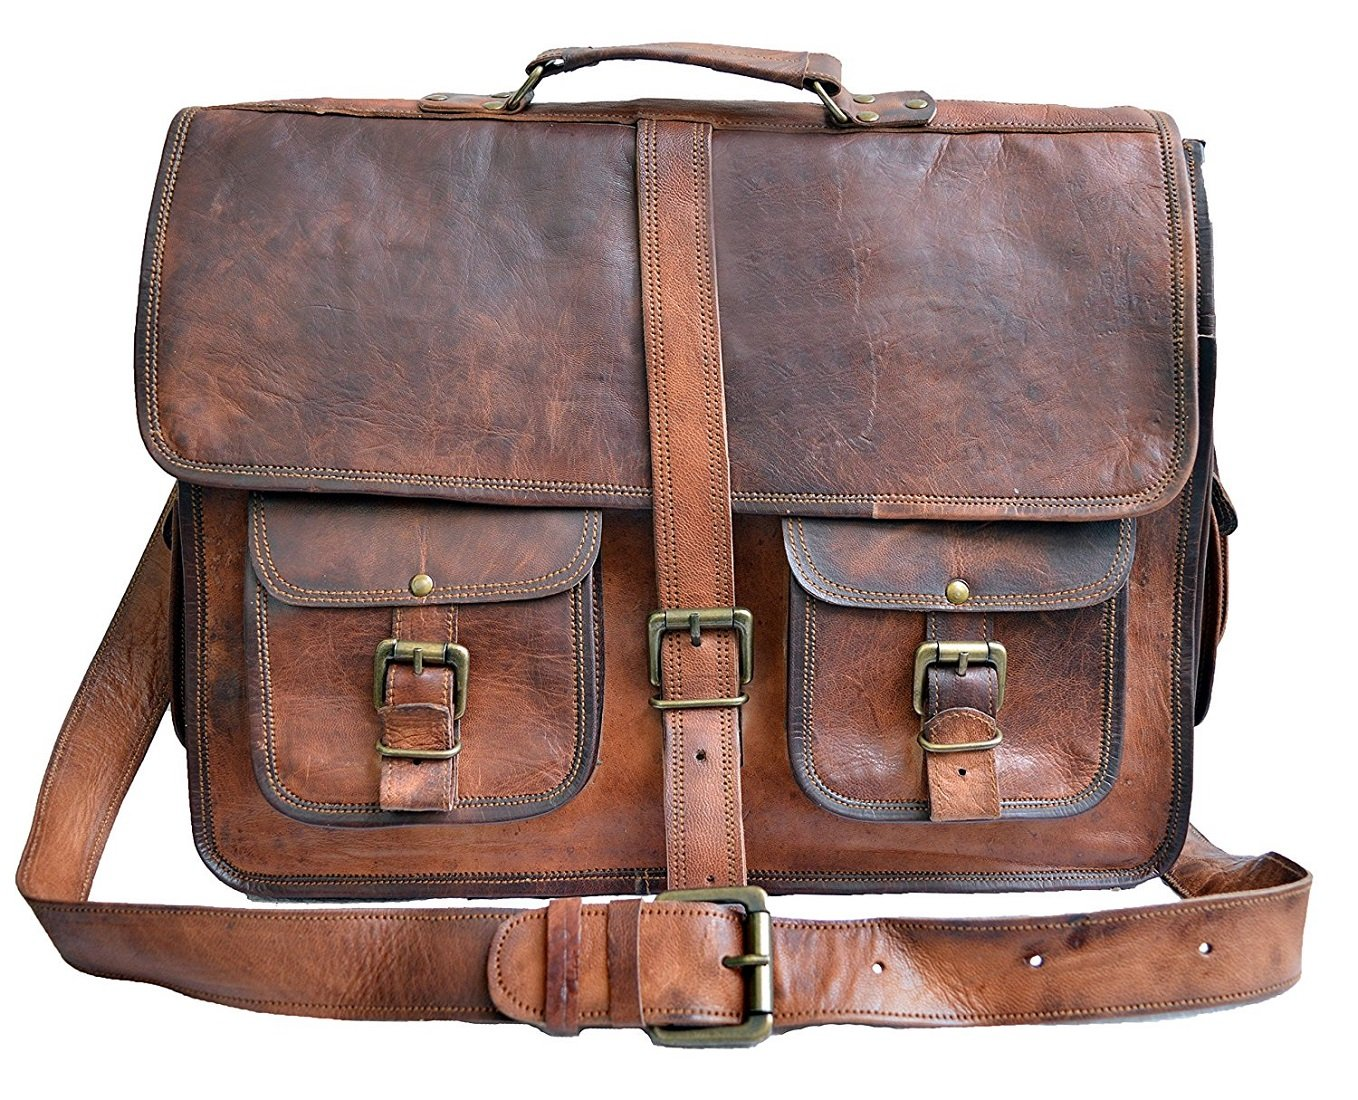 29f6aed302 Znt bags 15 Inch Vintage Handmade Leather Messenger Bag Laptop Briefcase  Satchel Bag  Amazon.in  Bags